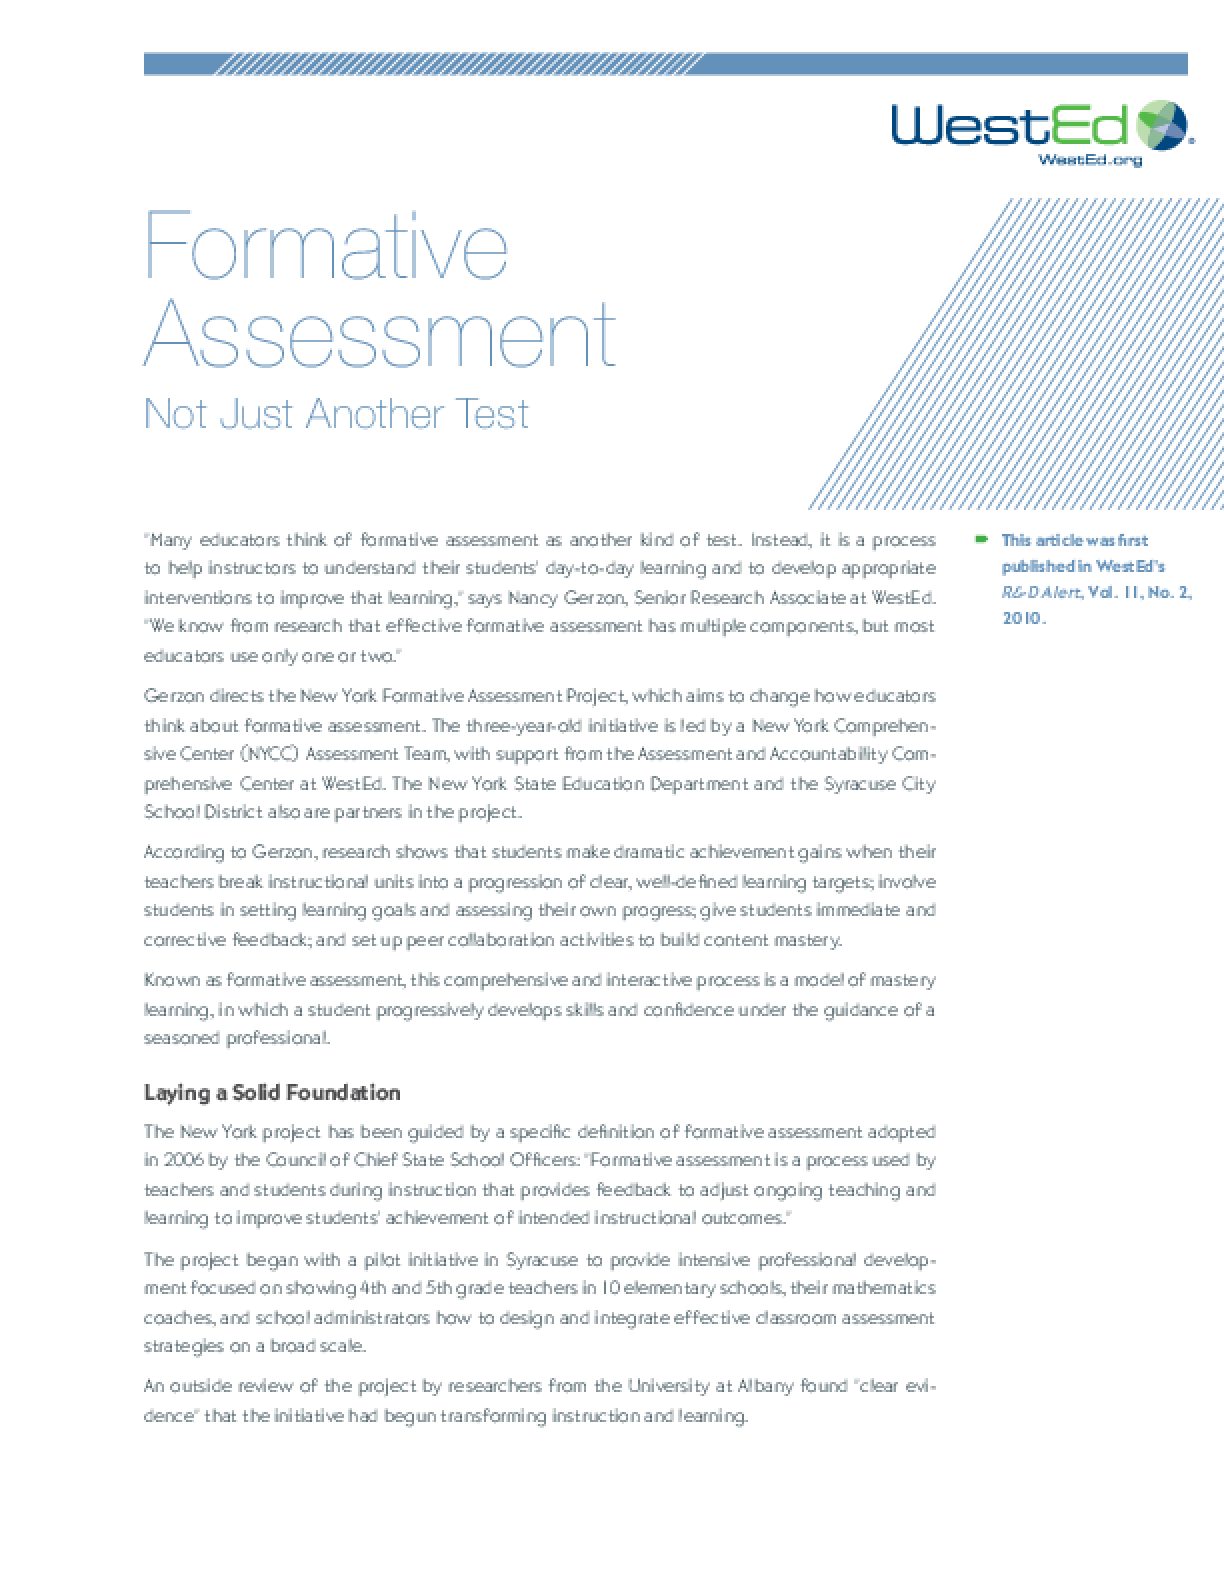 Formative Assessment: Not Just Another Test - IssueLab